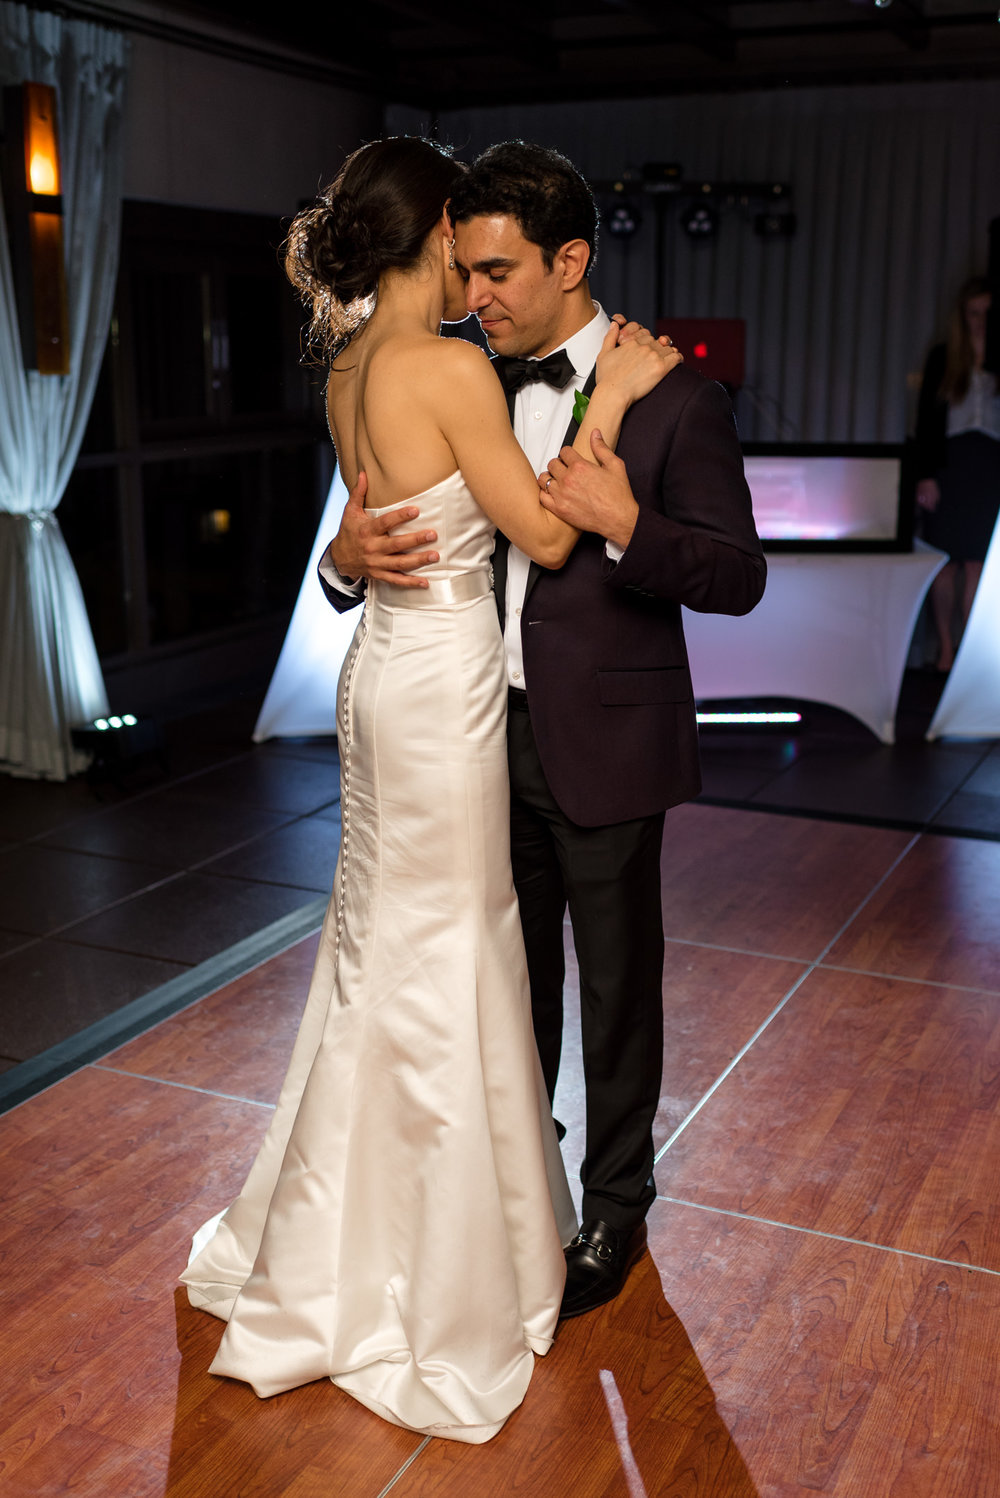 Documentary-Wedding-Photography-Andrew-Tat-Maria & AJ-32.jpg